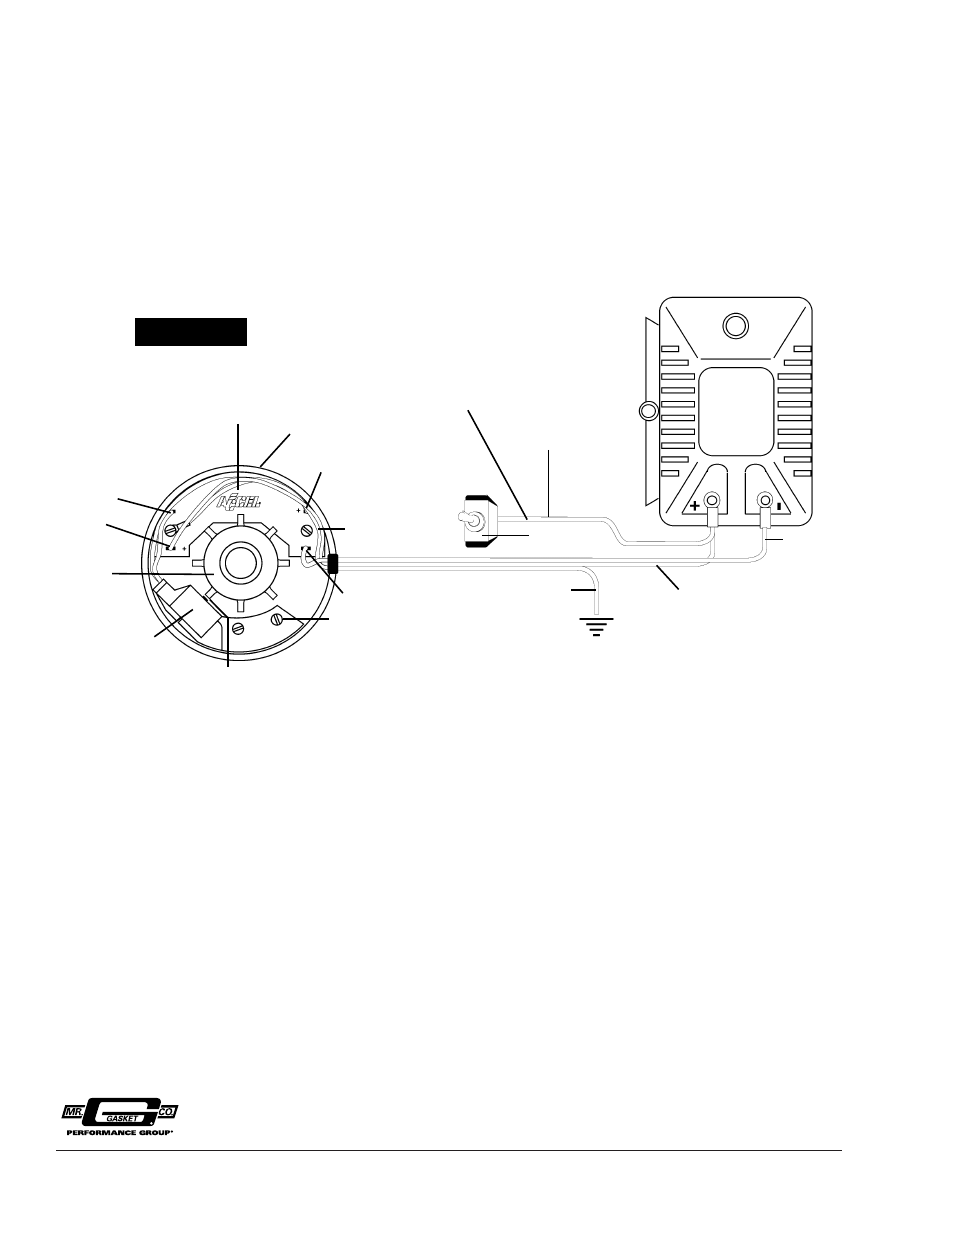 mallory ignition accel magnetic breakerless distributors 71000 page2?resize\\\=665%2C861 accel dfi wiring diagram 6a basic car parts diagram, accel ecm accel dfi gen 6 wiring diagram at gsmx.co